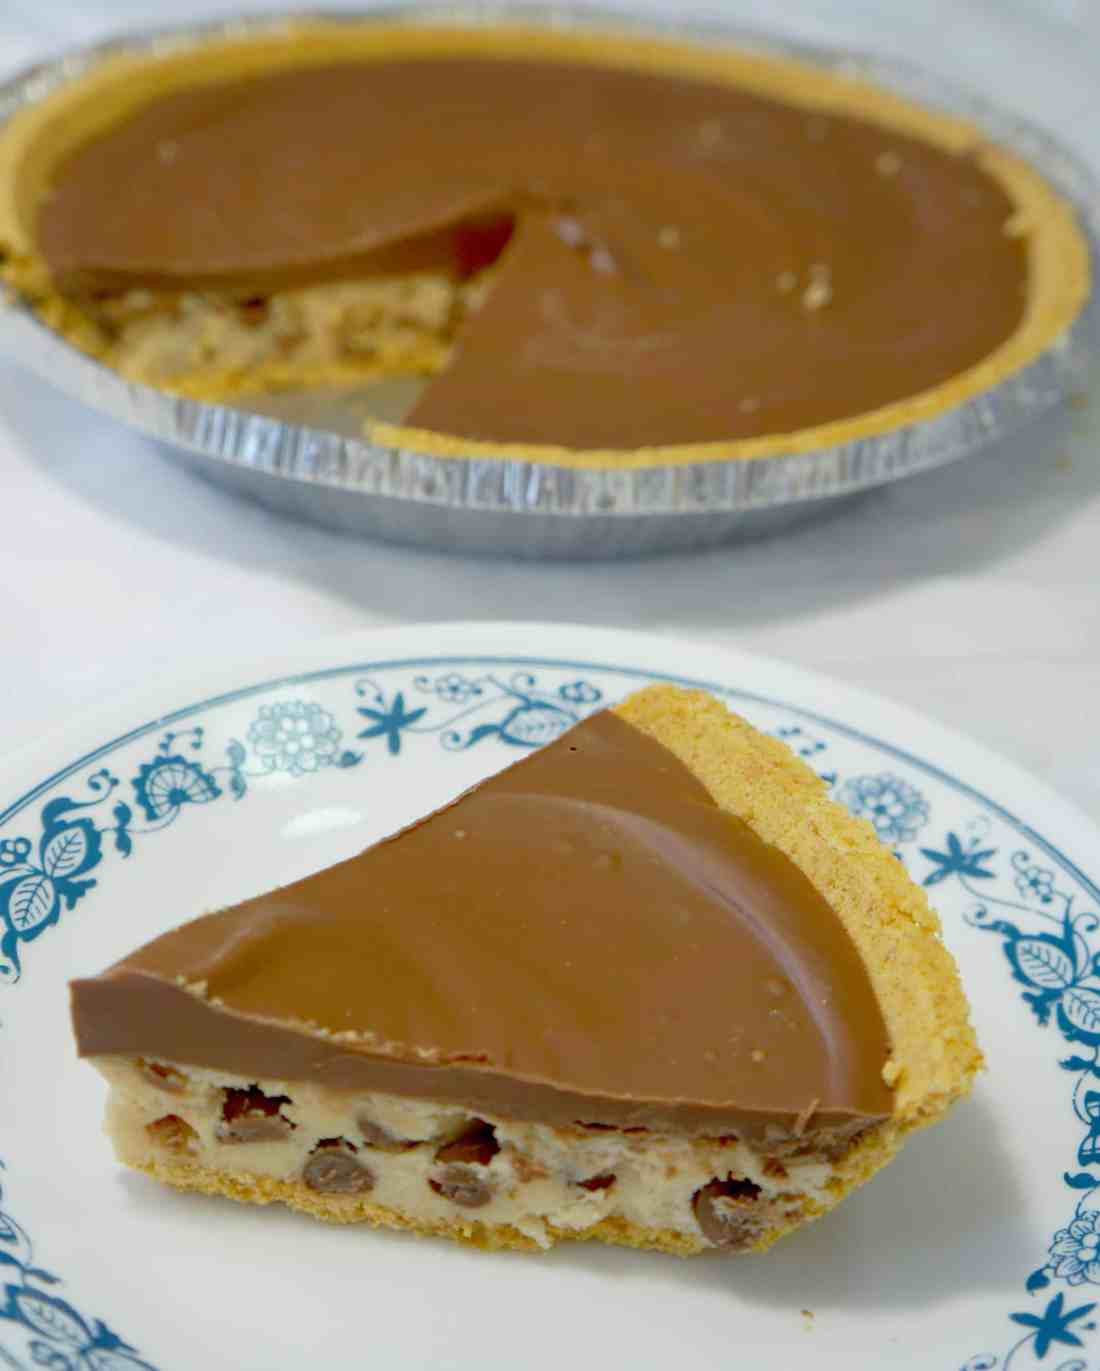 Chocolate Chip Cookie Dough Pie. Edible cookie dough in a graham cracker crust topped with milk chocolate. Easy no bake dessert with eggless cookie dough.